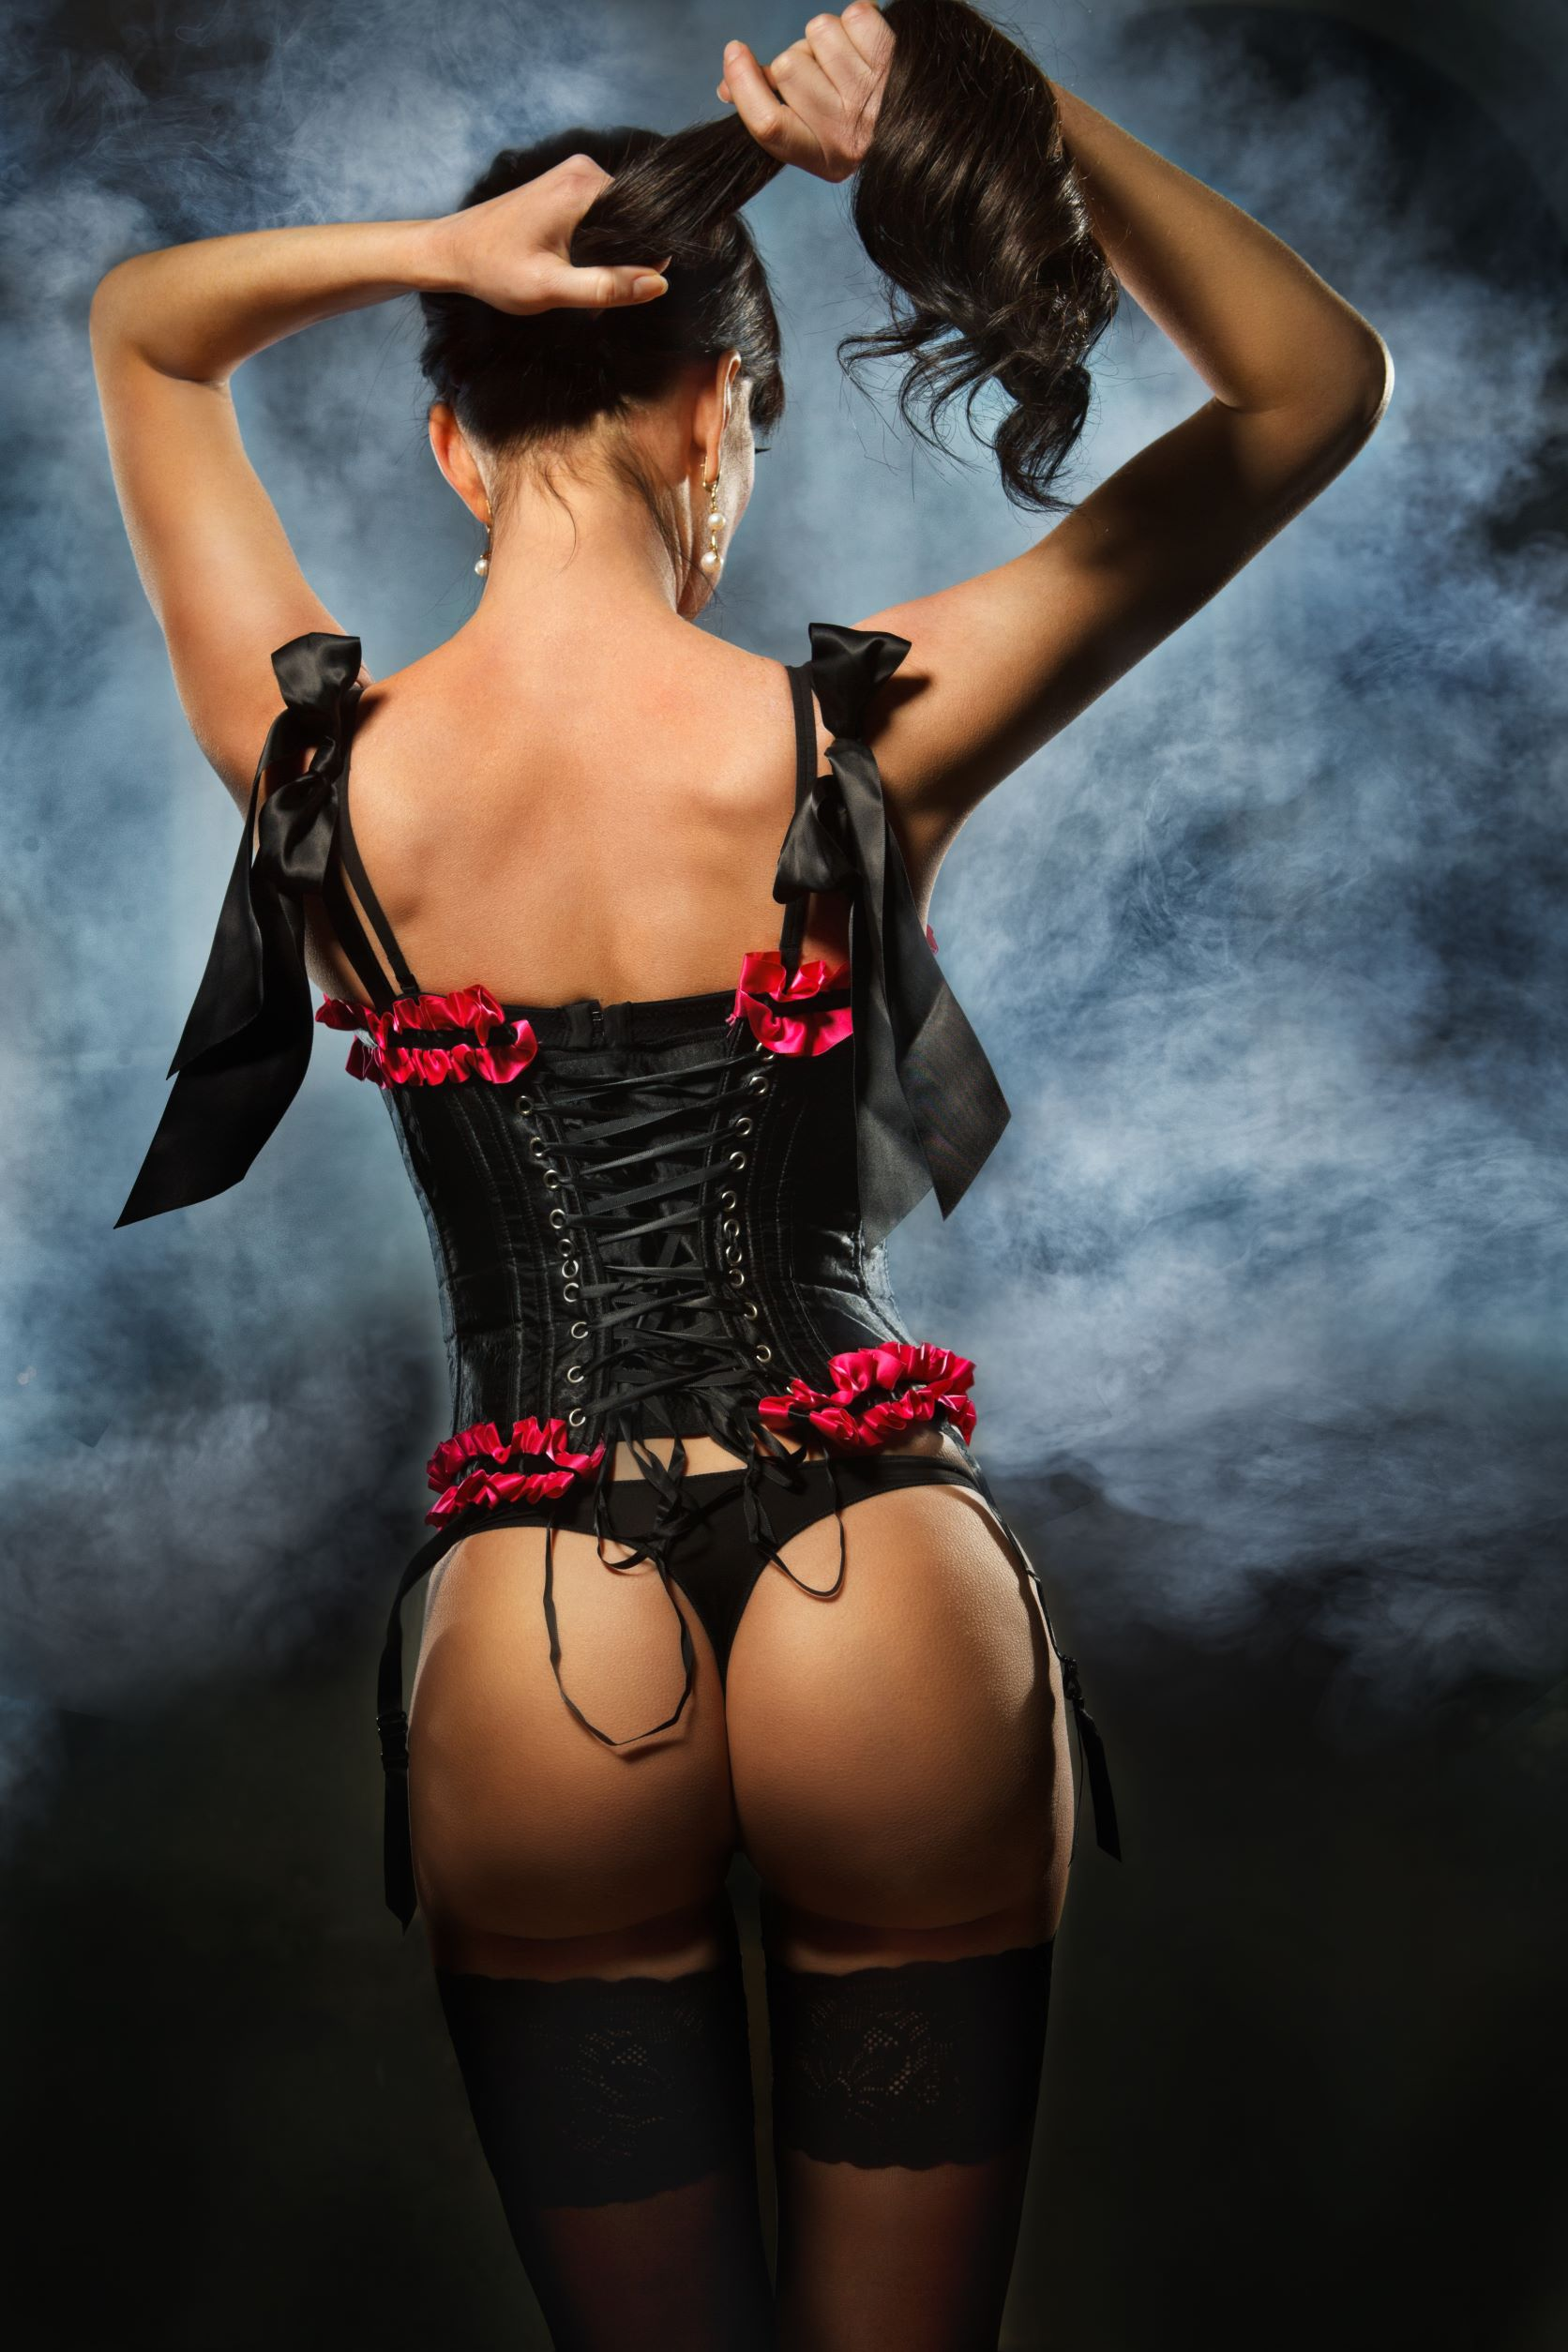 Woman in black and red lingerie with stockings and corset tying hair seductively